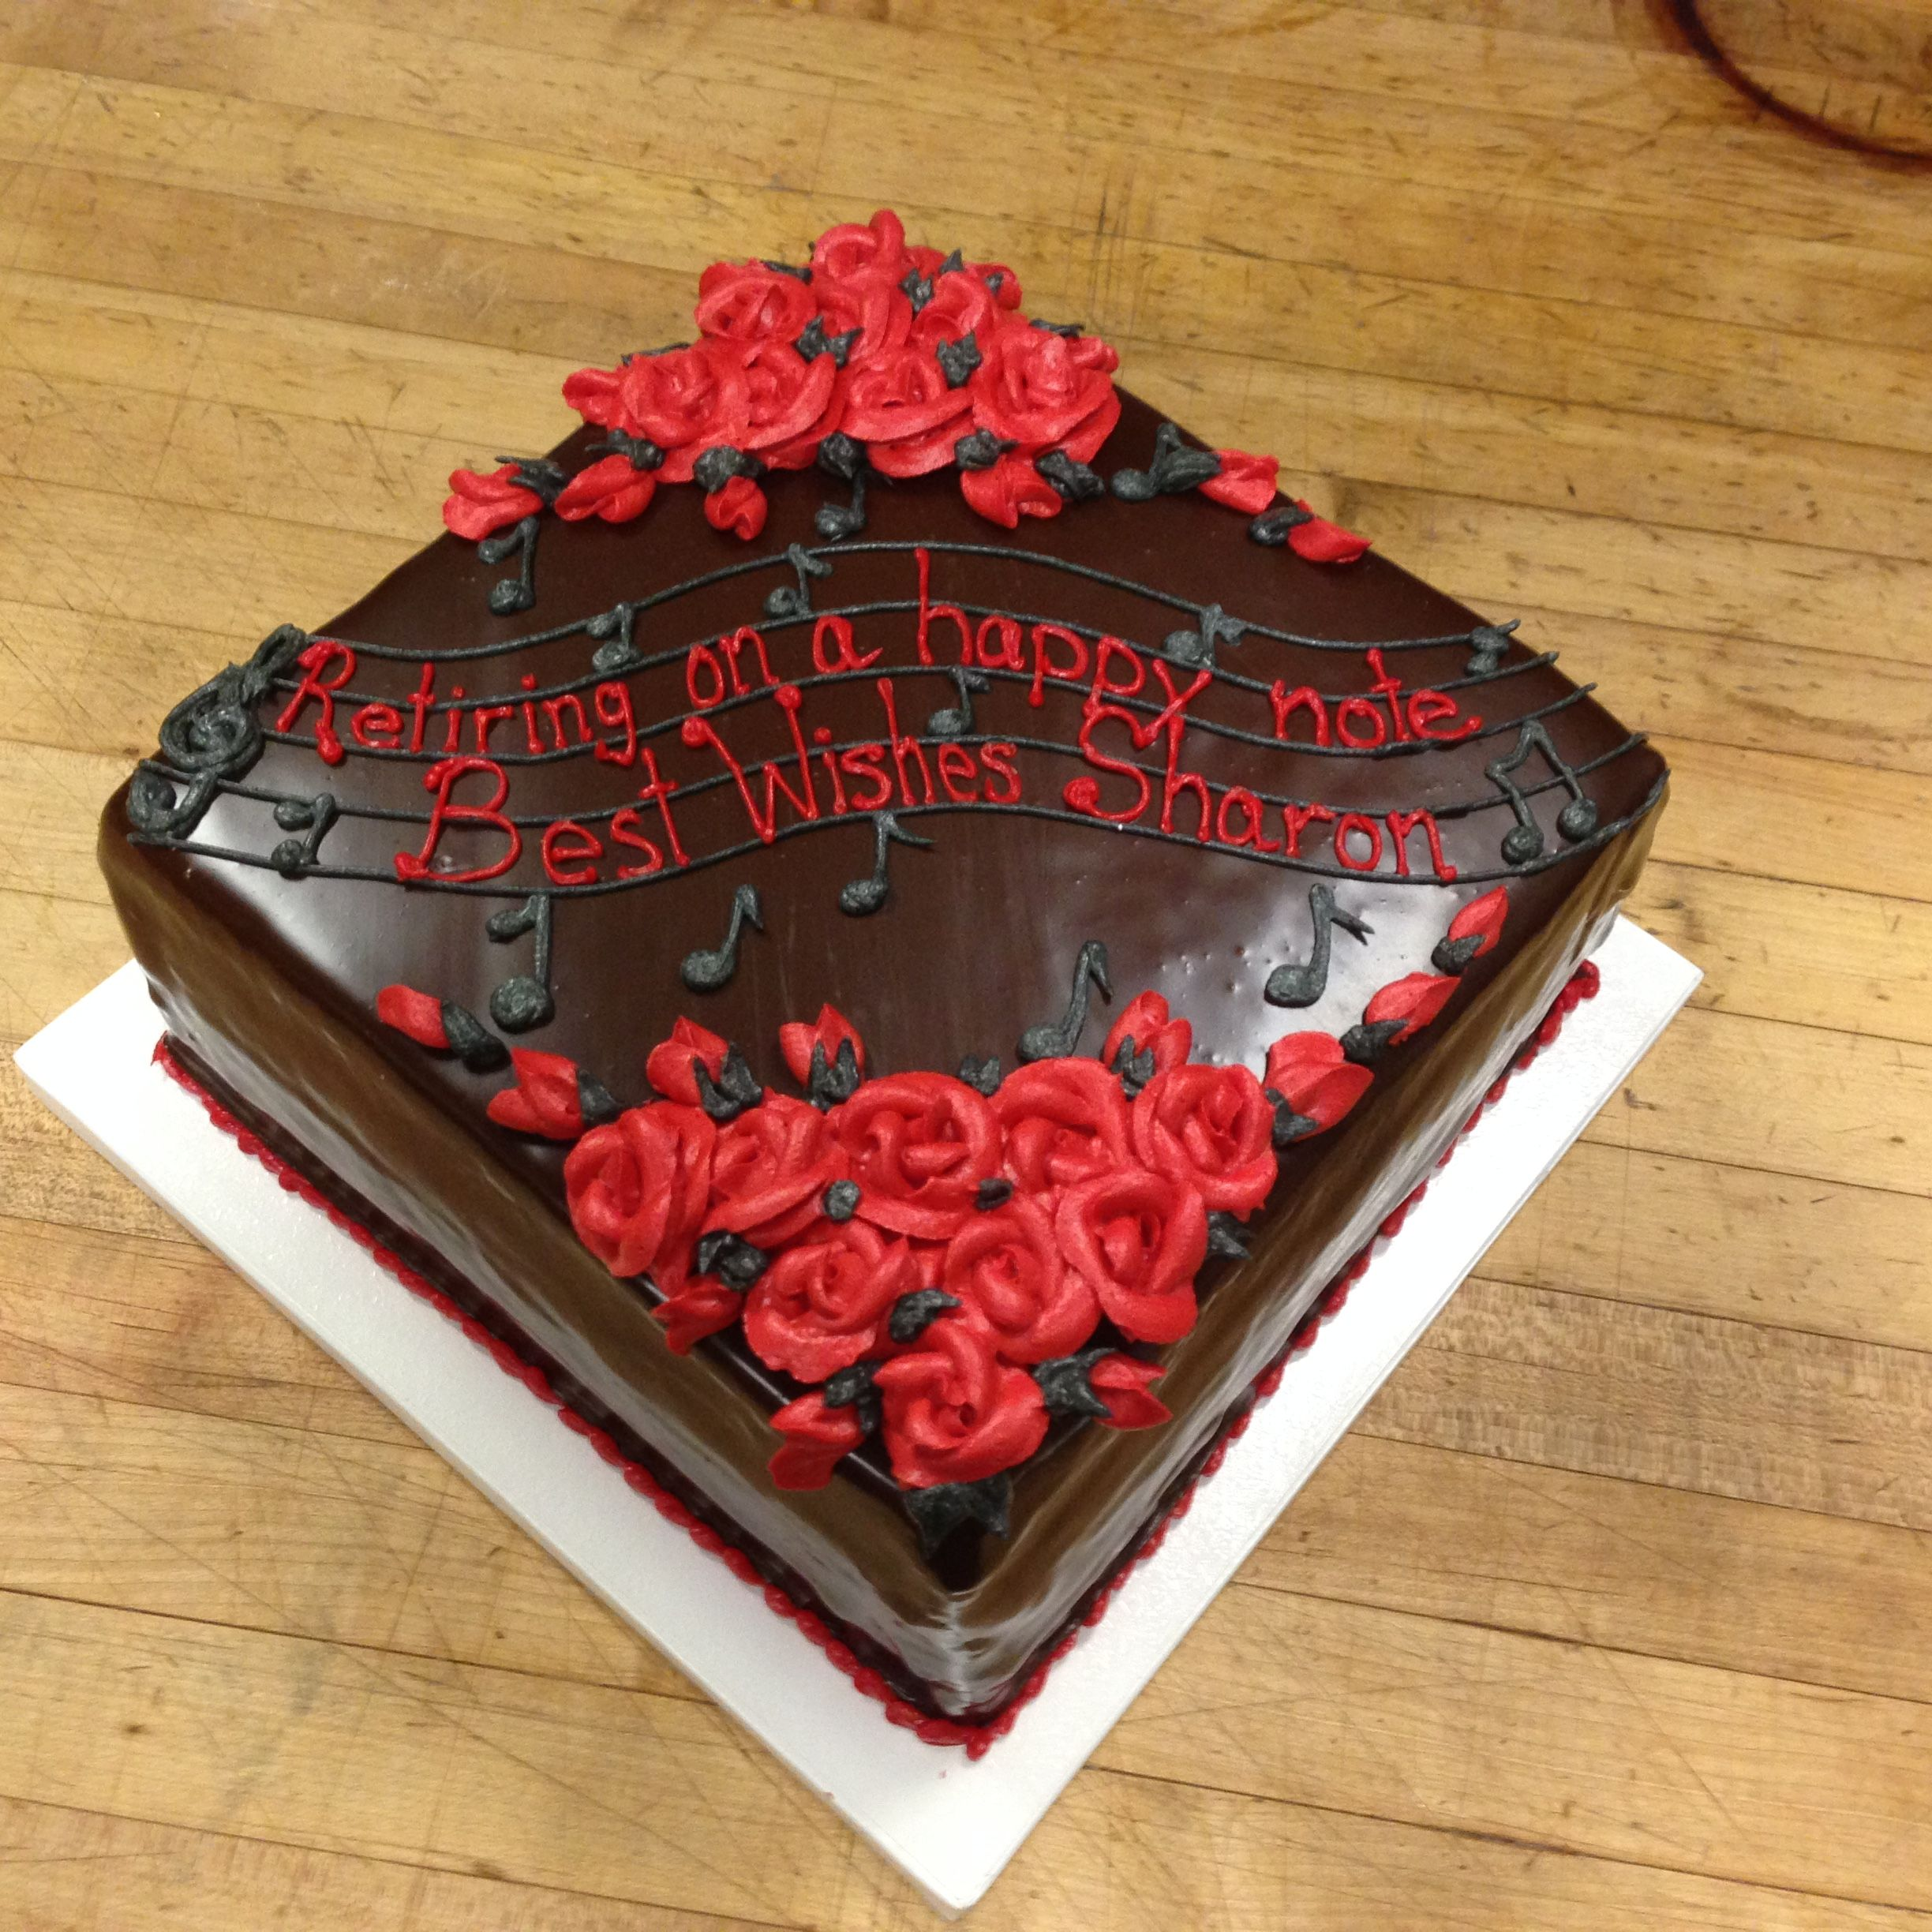 Music Notes Red Rose Design On The Ganache Covered Retirement Cake